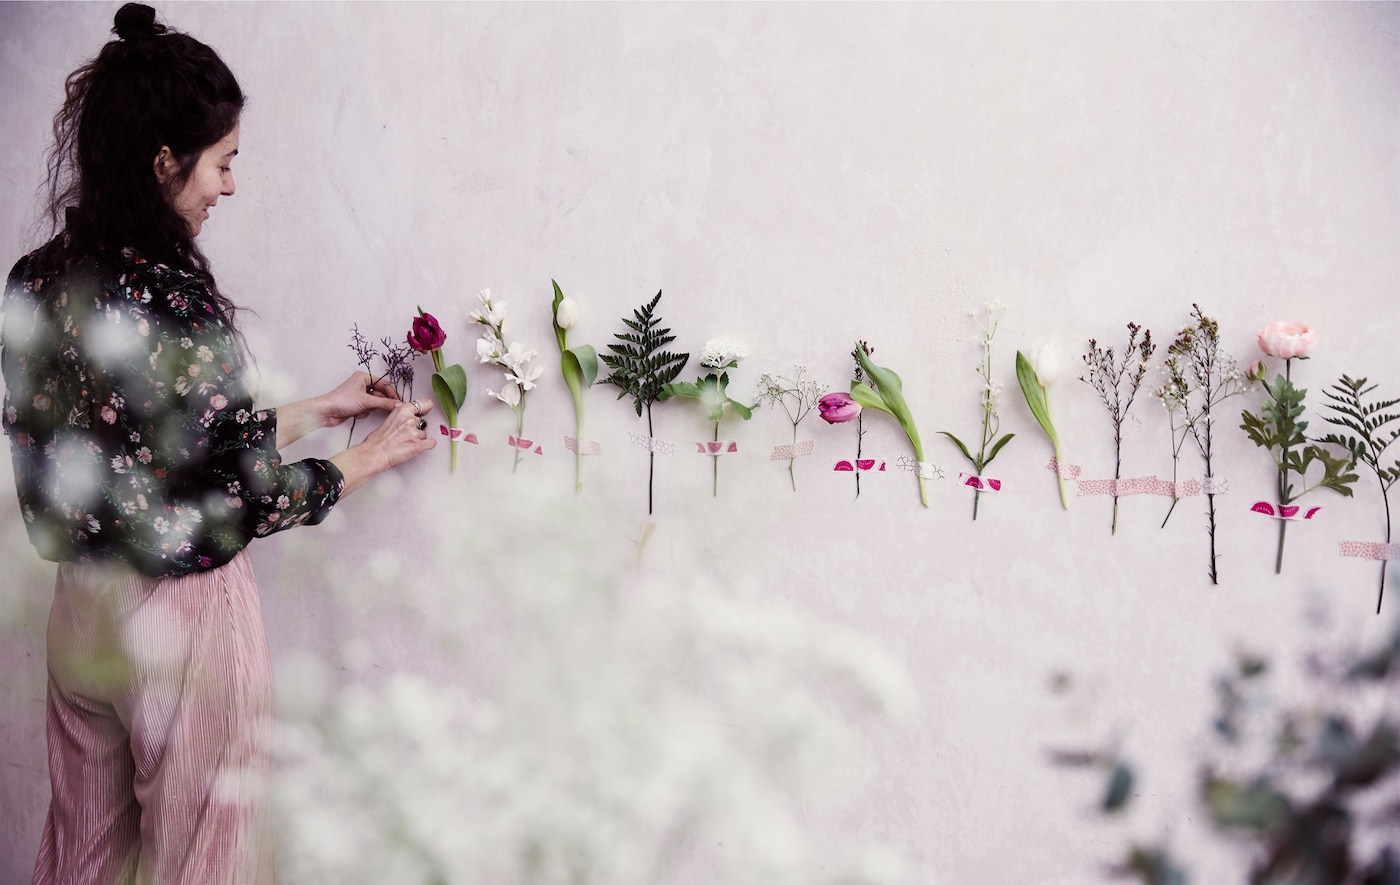 Julia tapes single flower stems in a line along a white wall.